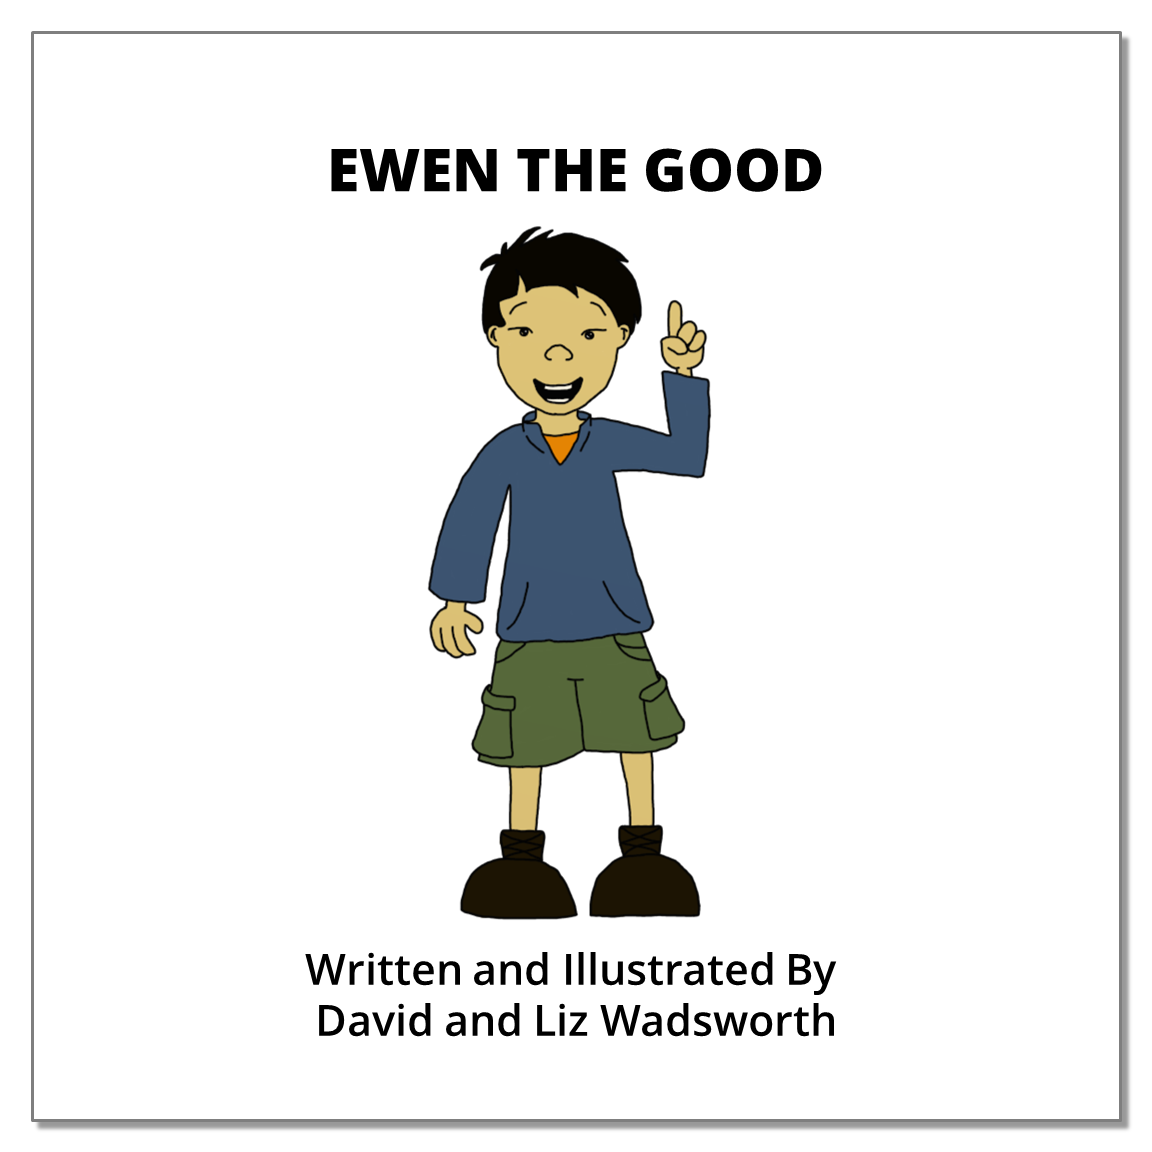 Ewen The Good - The parable of building a tower and the king making war.